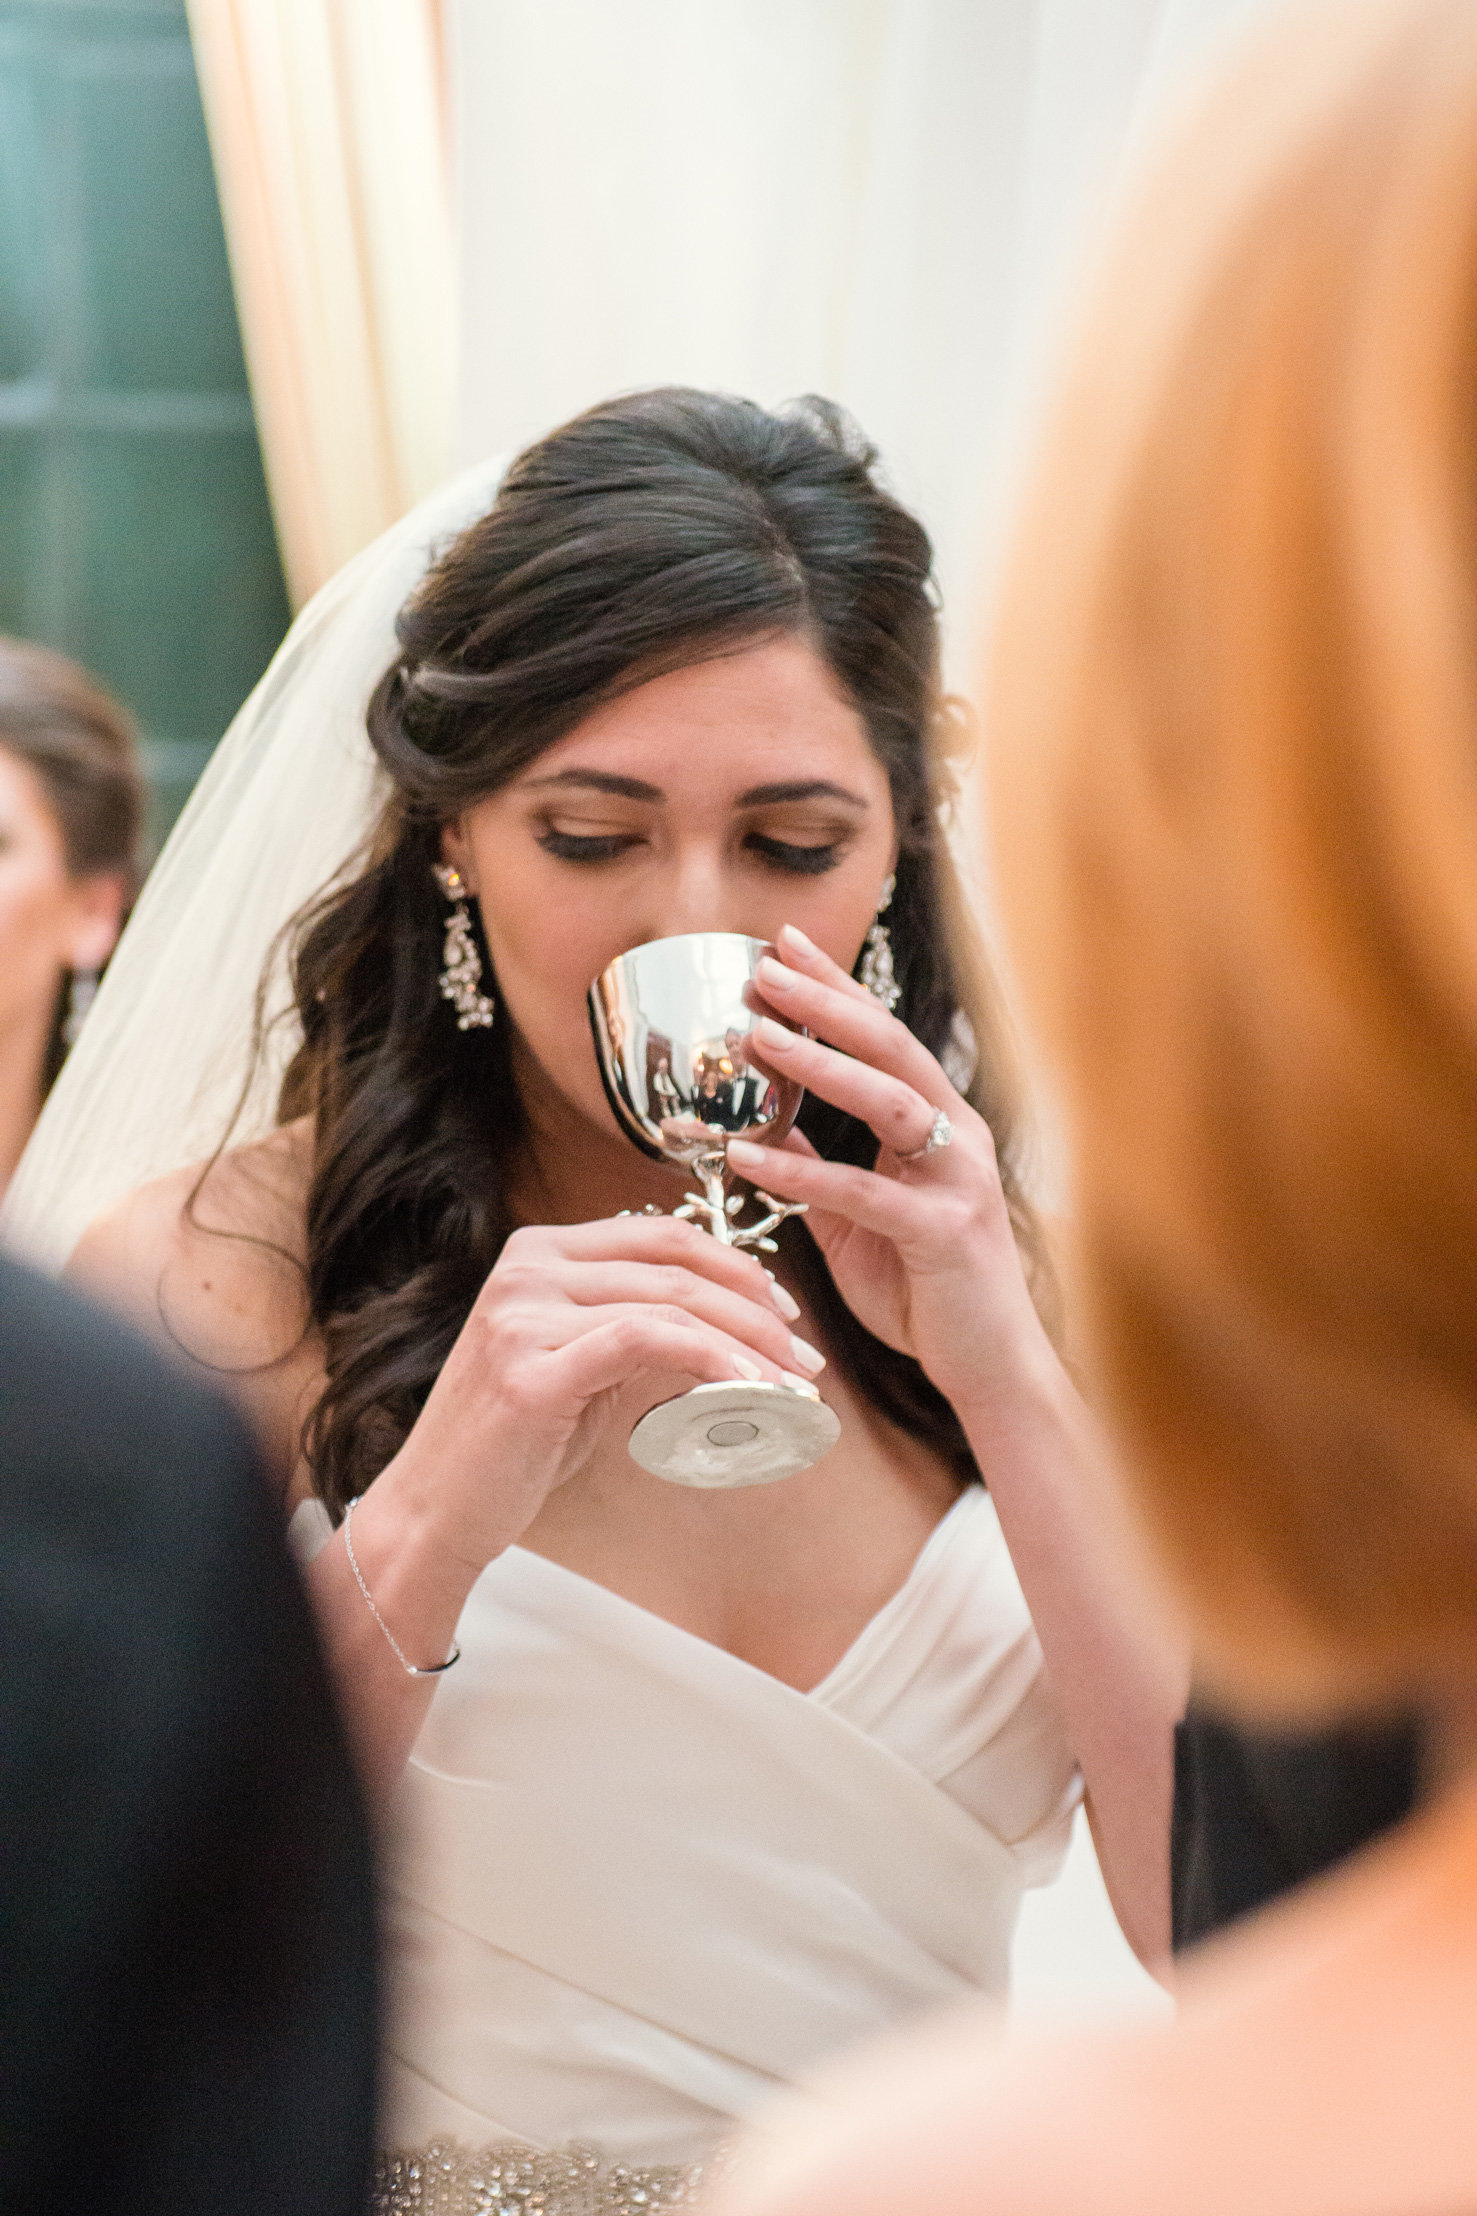 bride drinking out of the wine cup during her wedding ceremony